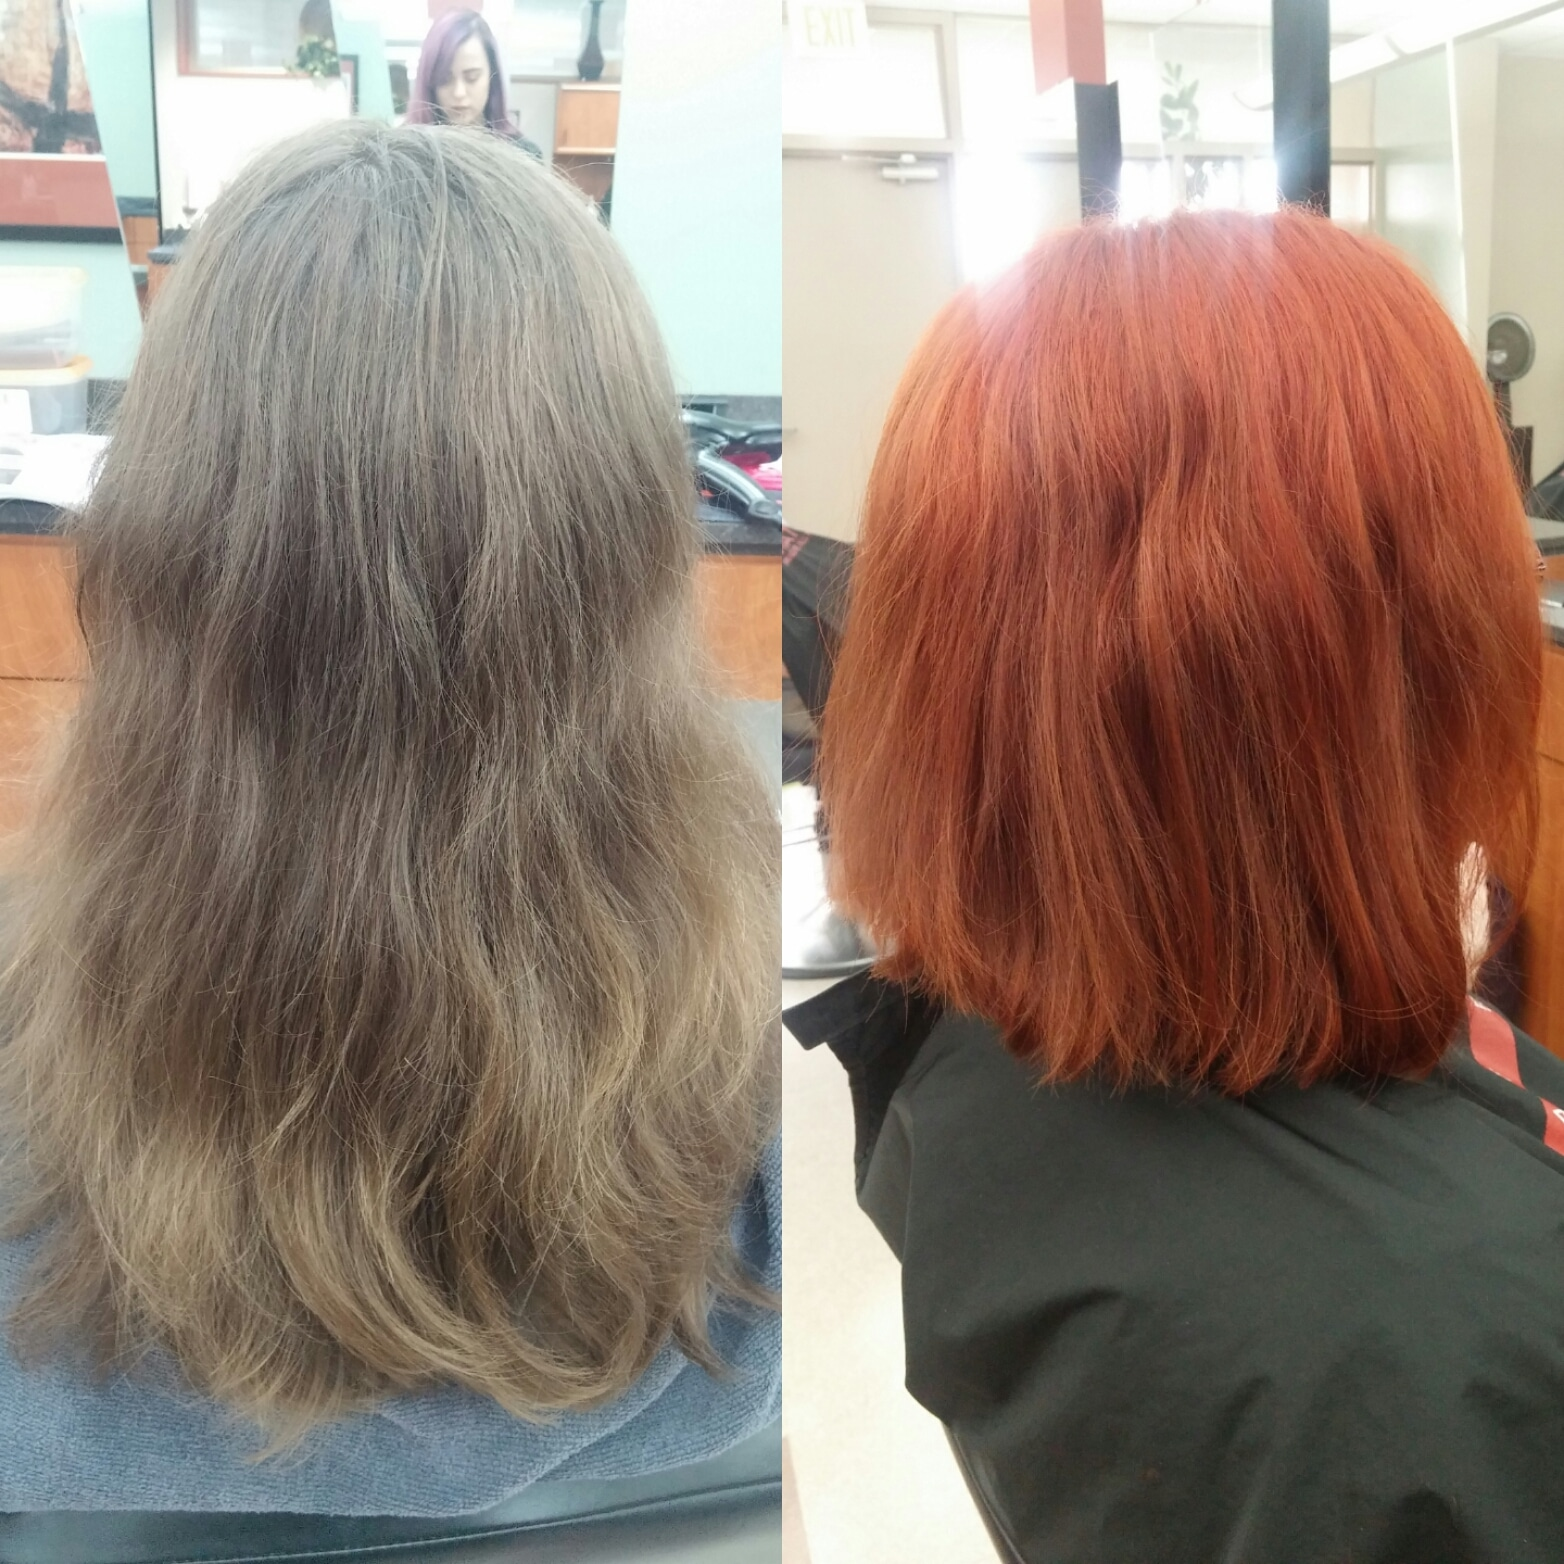 allie-before-after-5-3-17